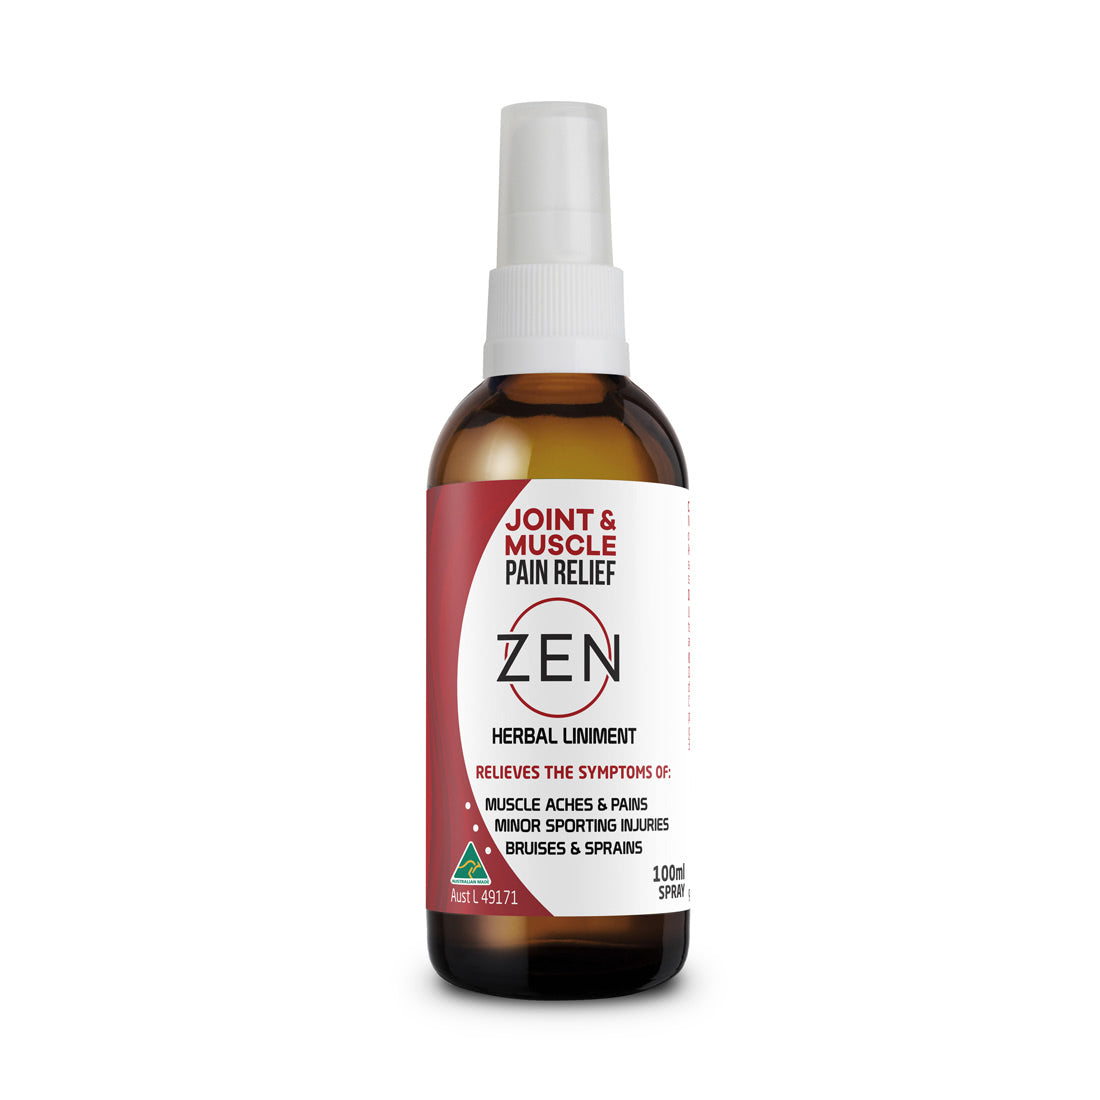 Zen Joint & Muscle Pain Relief Spray 100ml